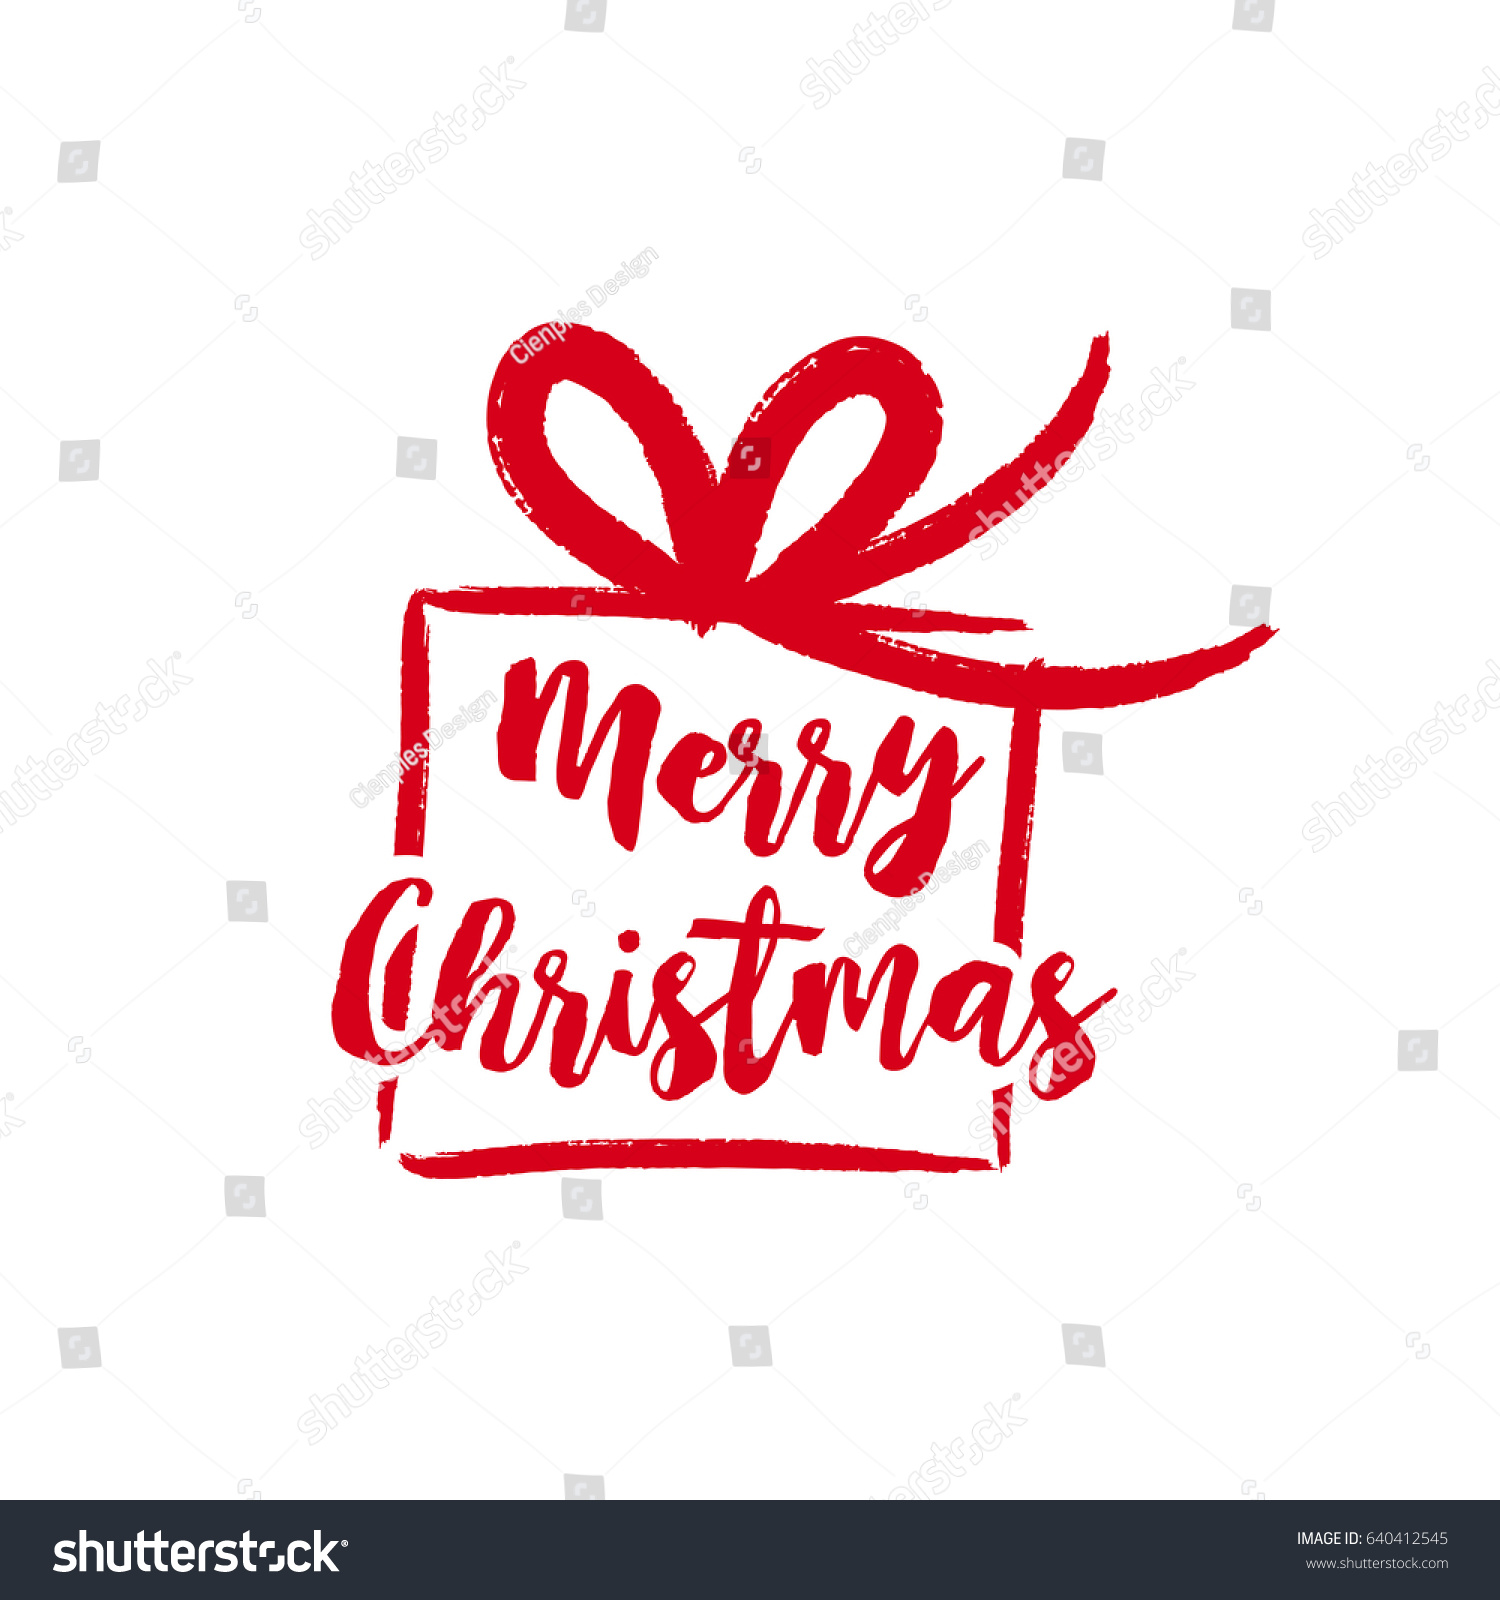 Merry Christmas Gift Text Quote Calligraphy Stock Vector